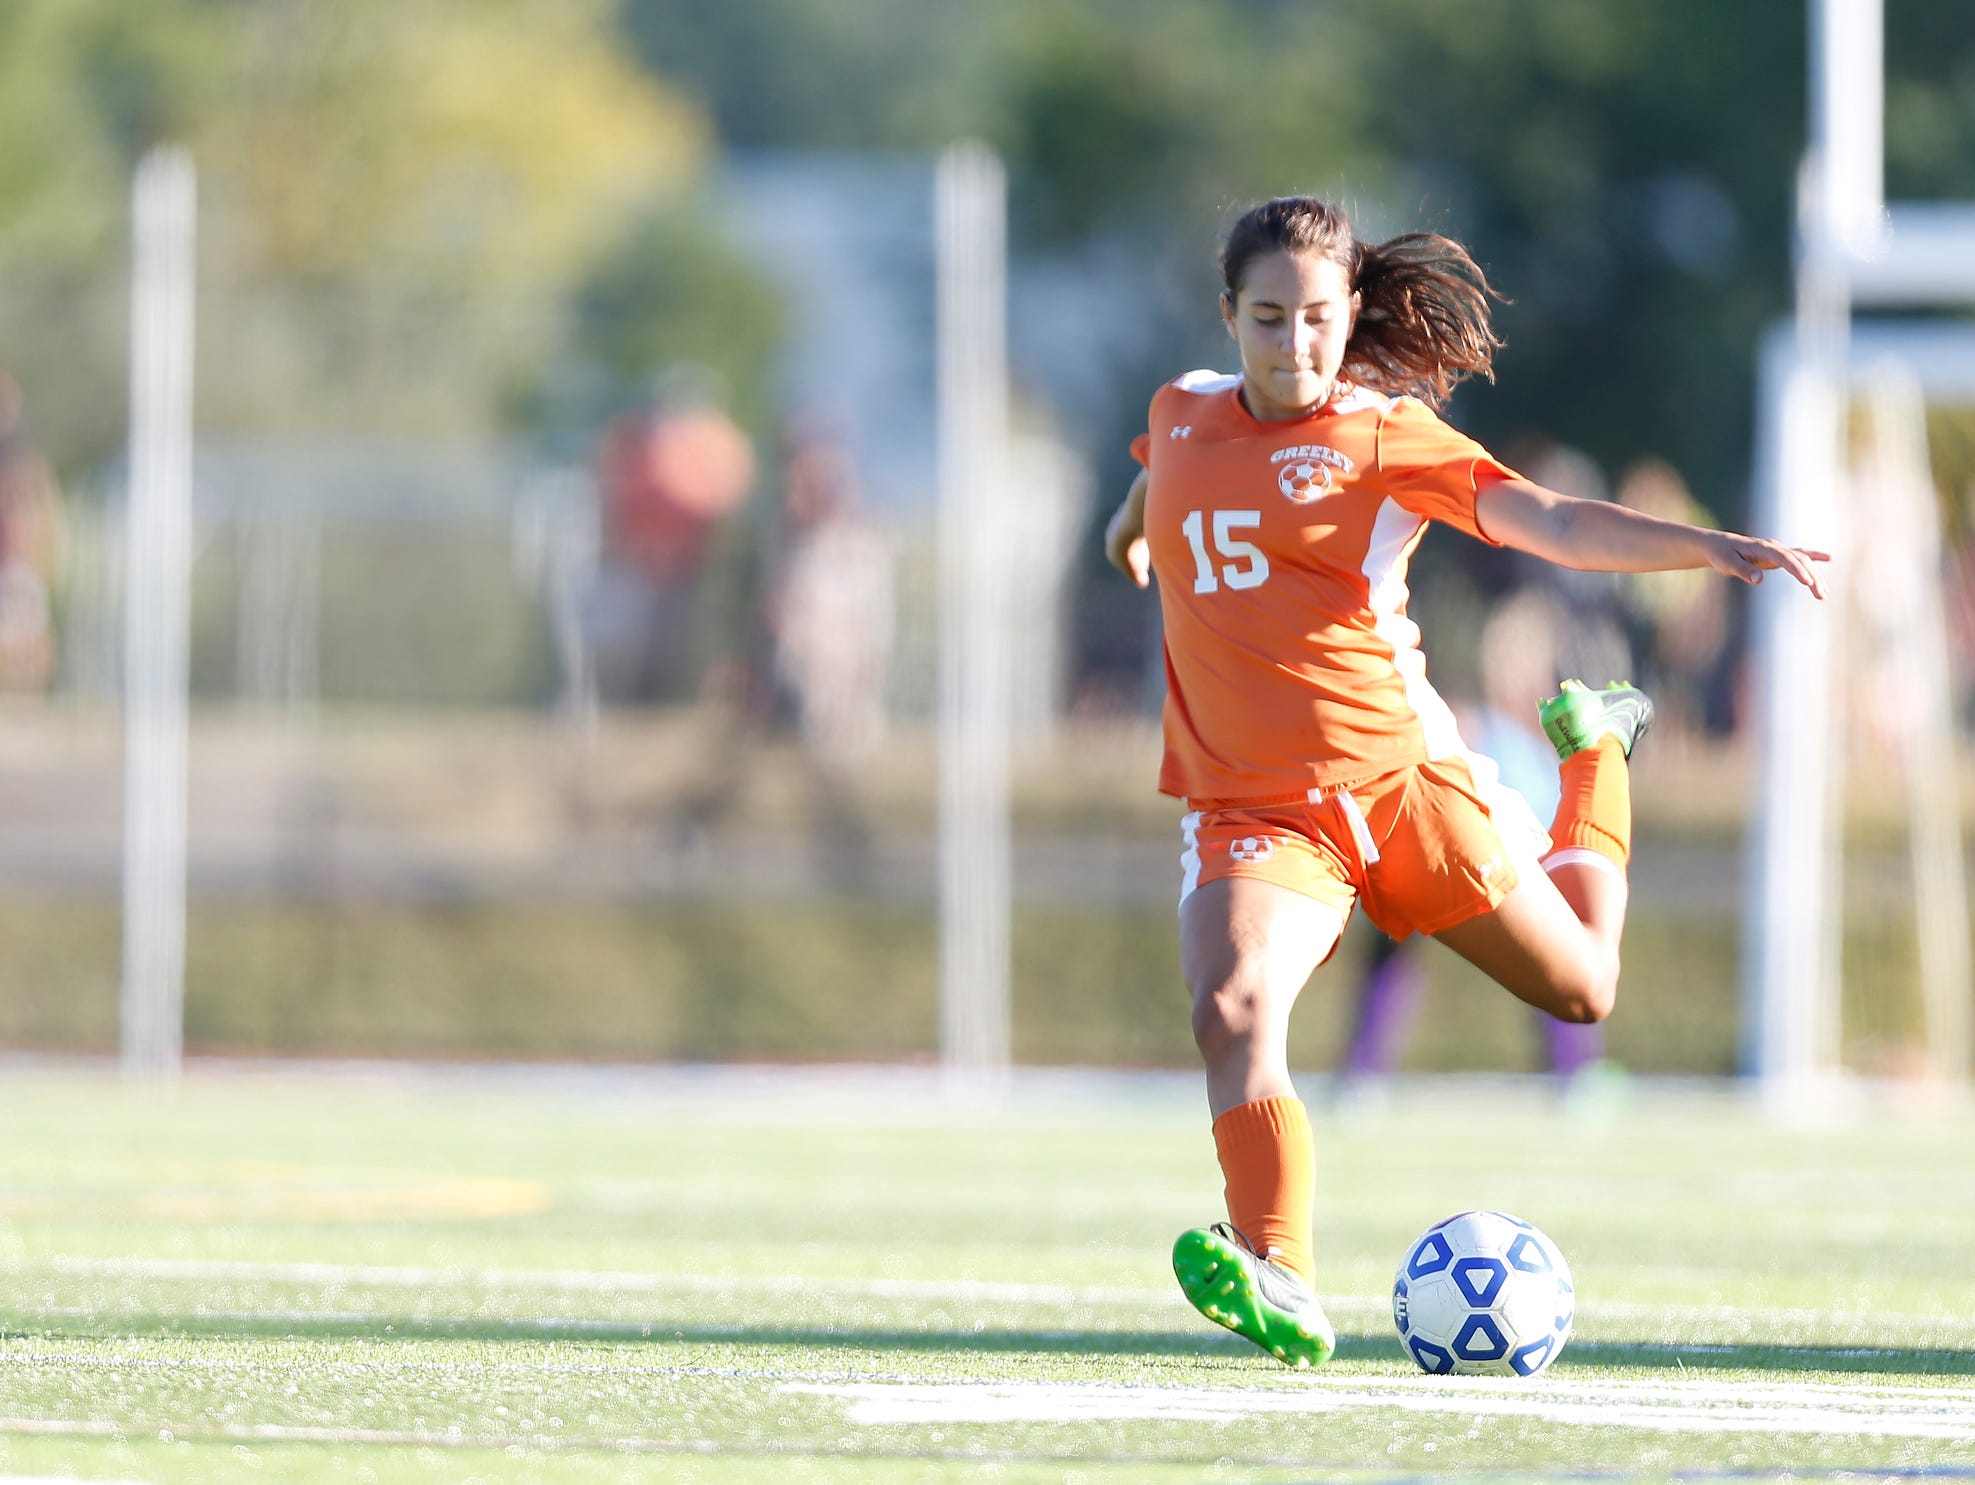 Greeley moved up to No. 3 in the lohud girls soccer power rankings.